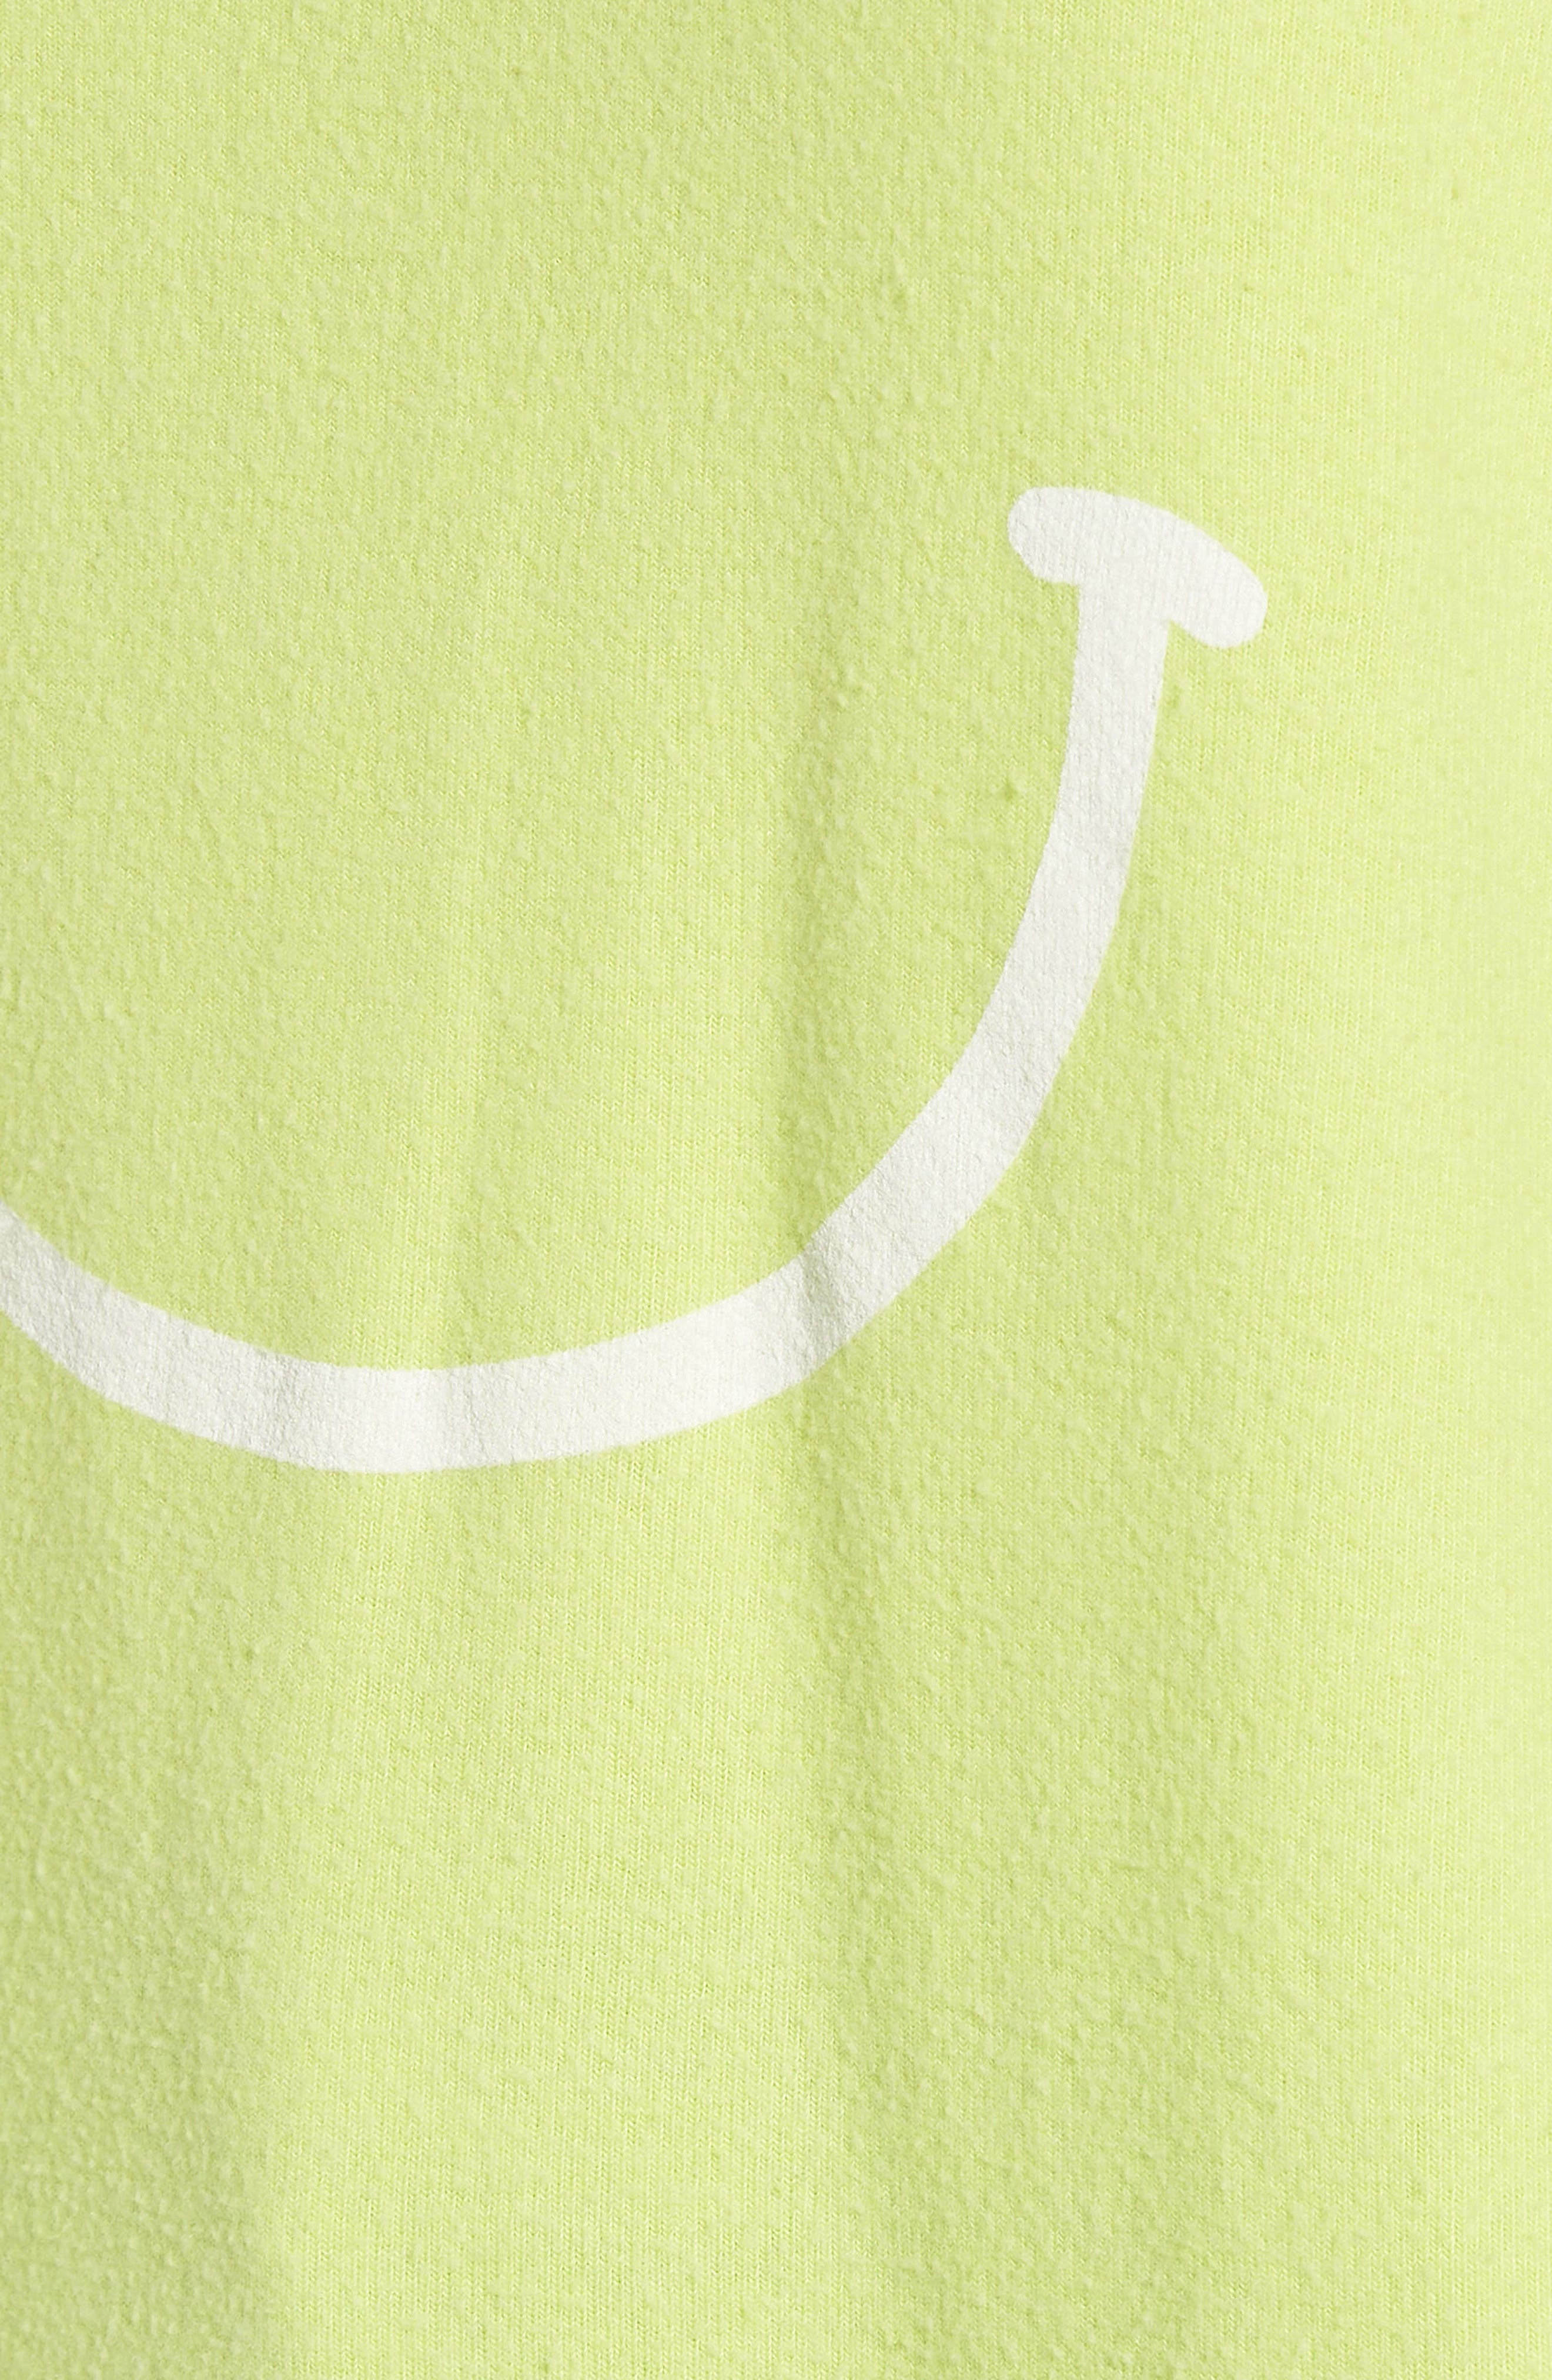 Sleepy Smiley Sommers Sweatshirt,                             Alternate thumbnail 6, color,